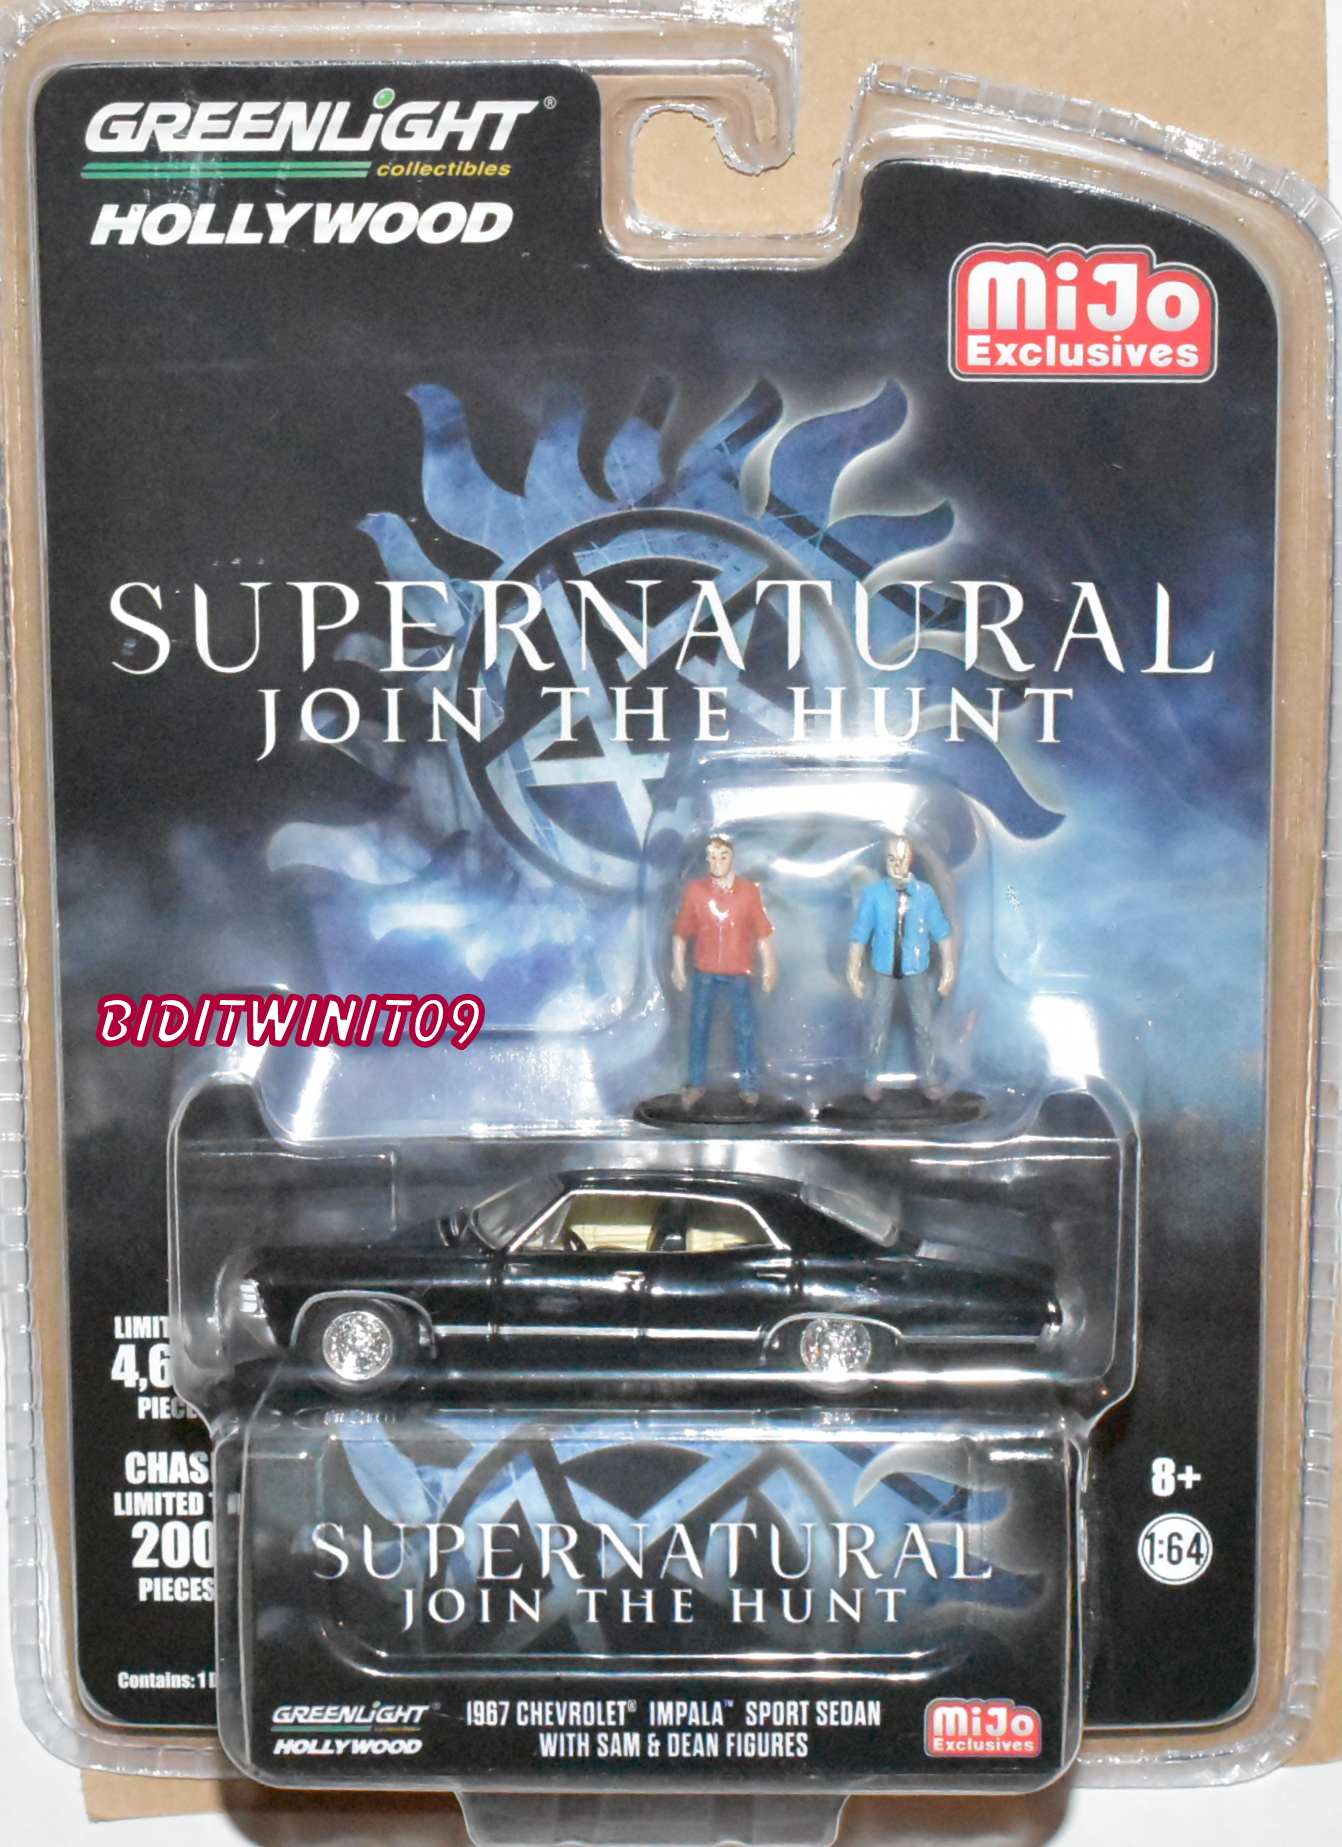 GREENLIGHT 2018 1967 CHEVY IMPALA W/ FIGURES SUPERNATURAL MIJO EXCLUSIVES